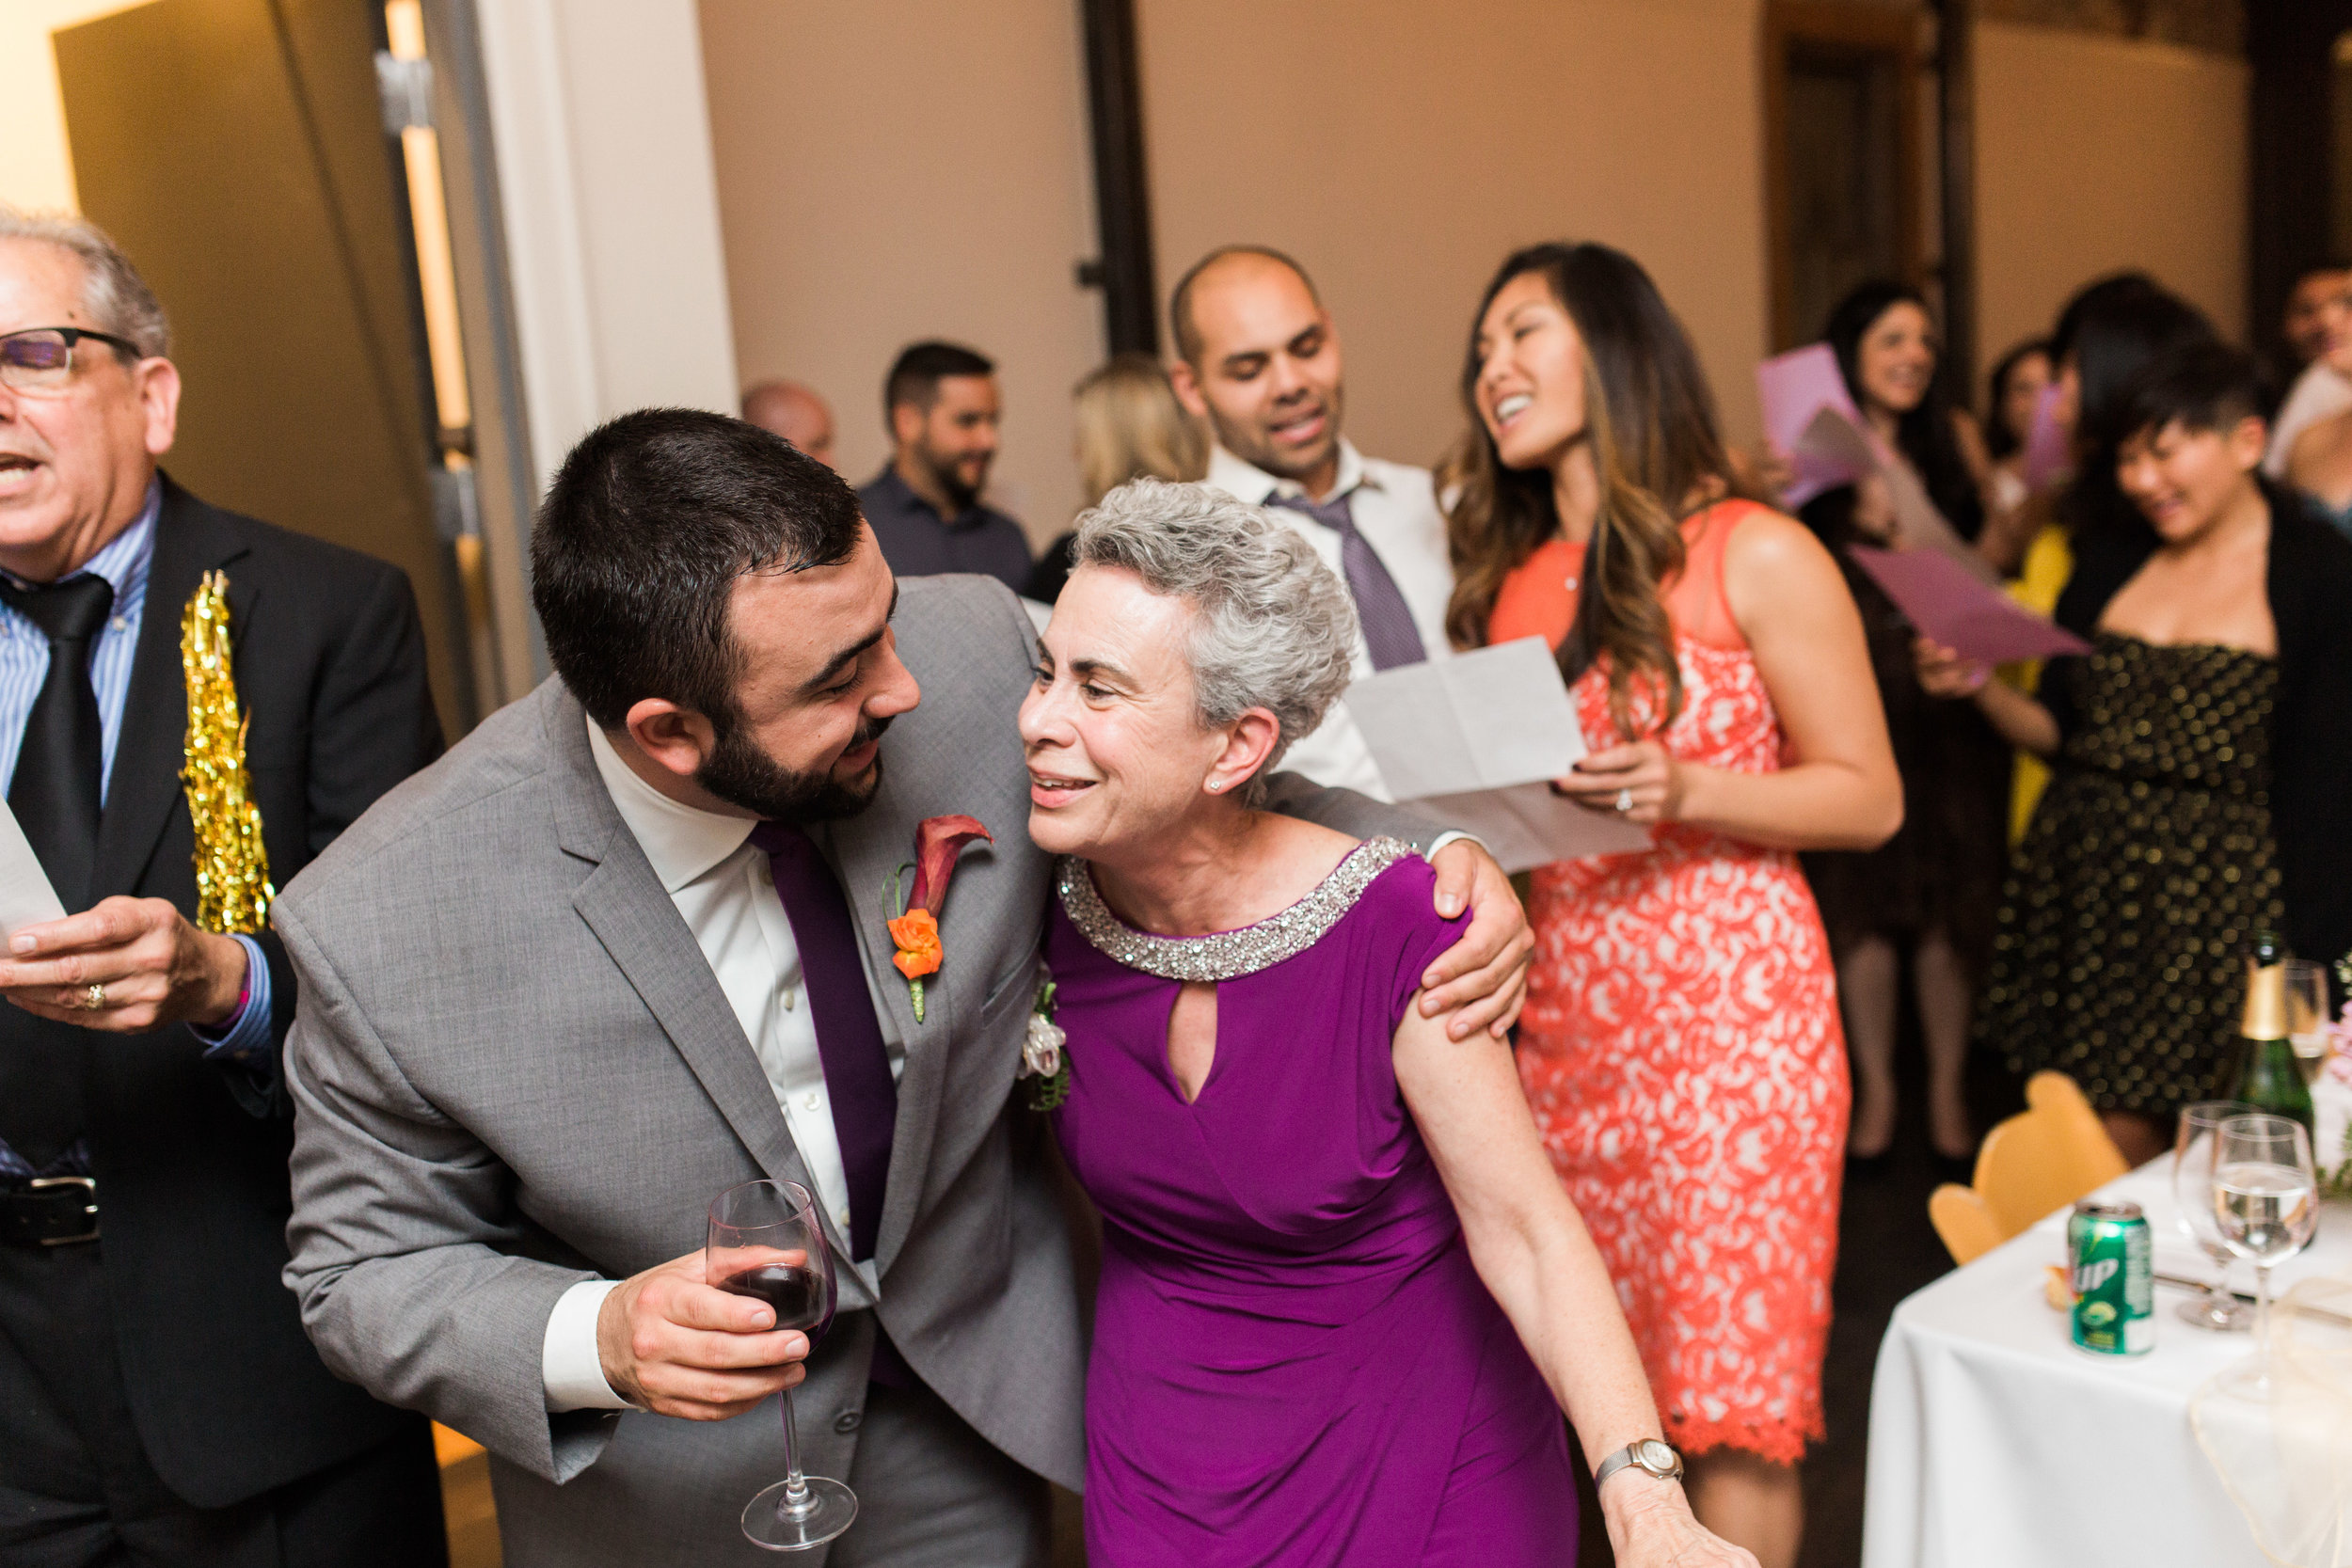 style-inspired-wedding-at-firehouse-8-in-san-francisco-94.jpg